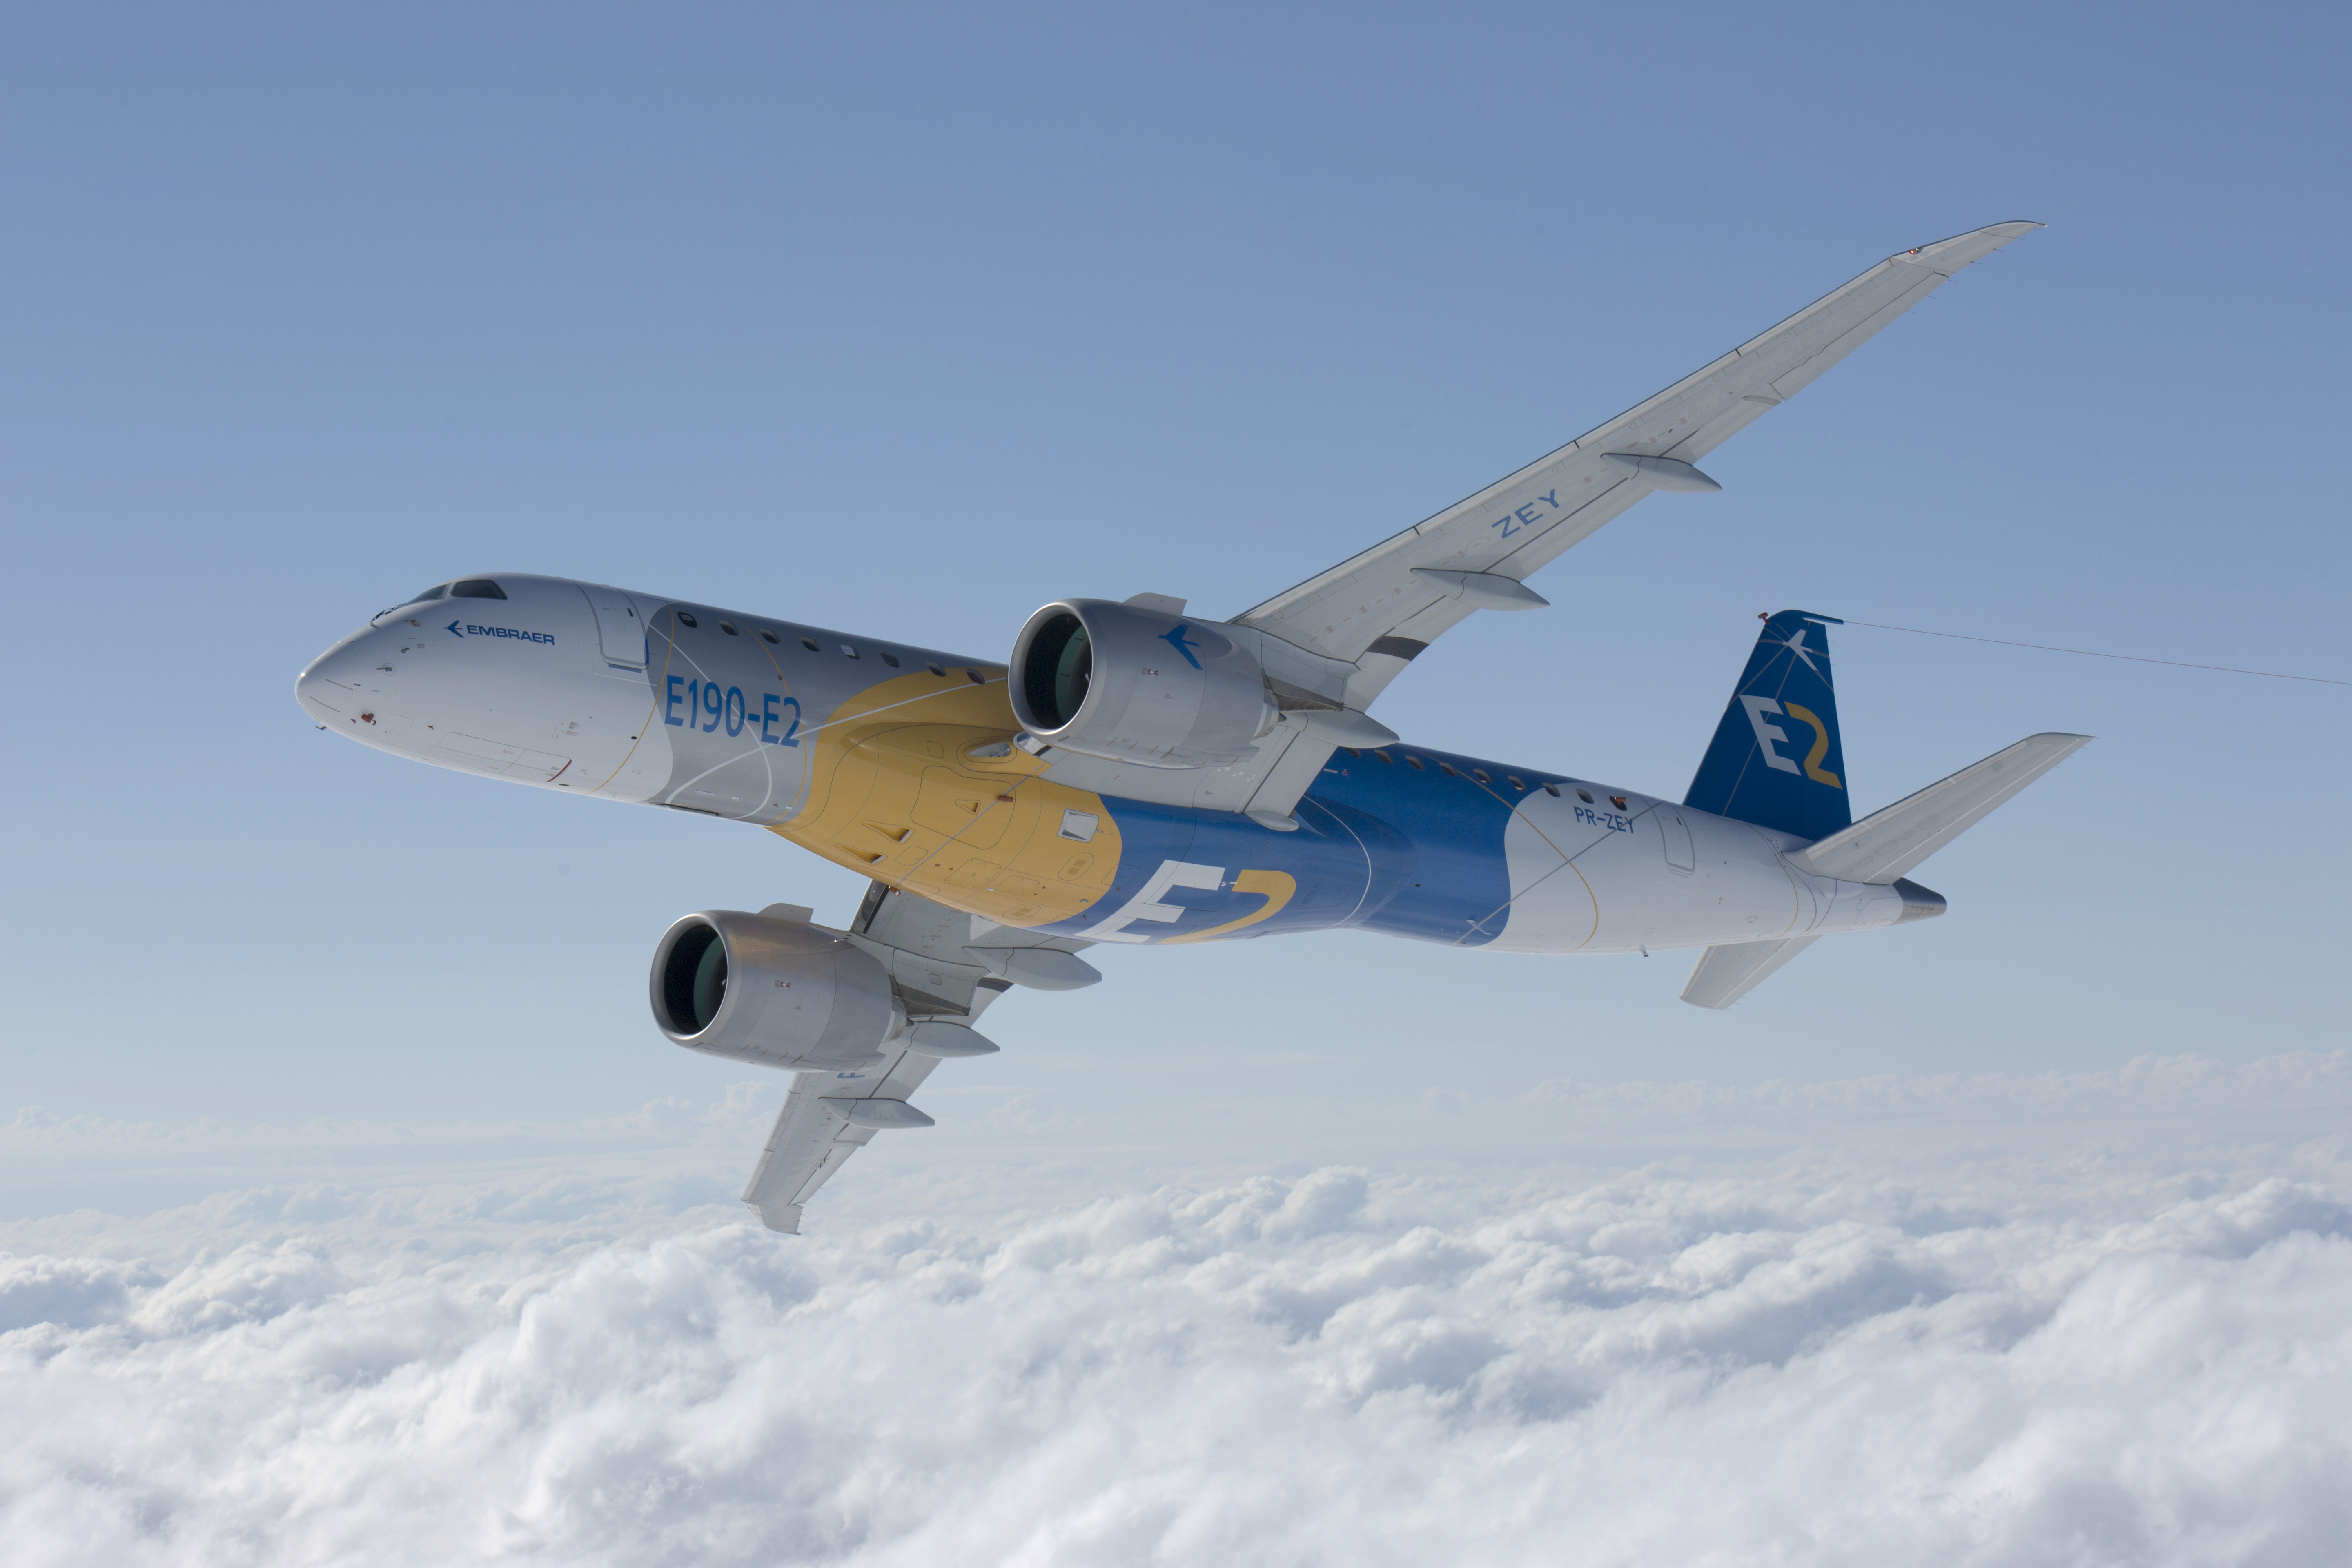 Alcoa signed a $470 million contract with Embraer to supply aluminum sheet and plate for Embraer